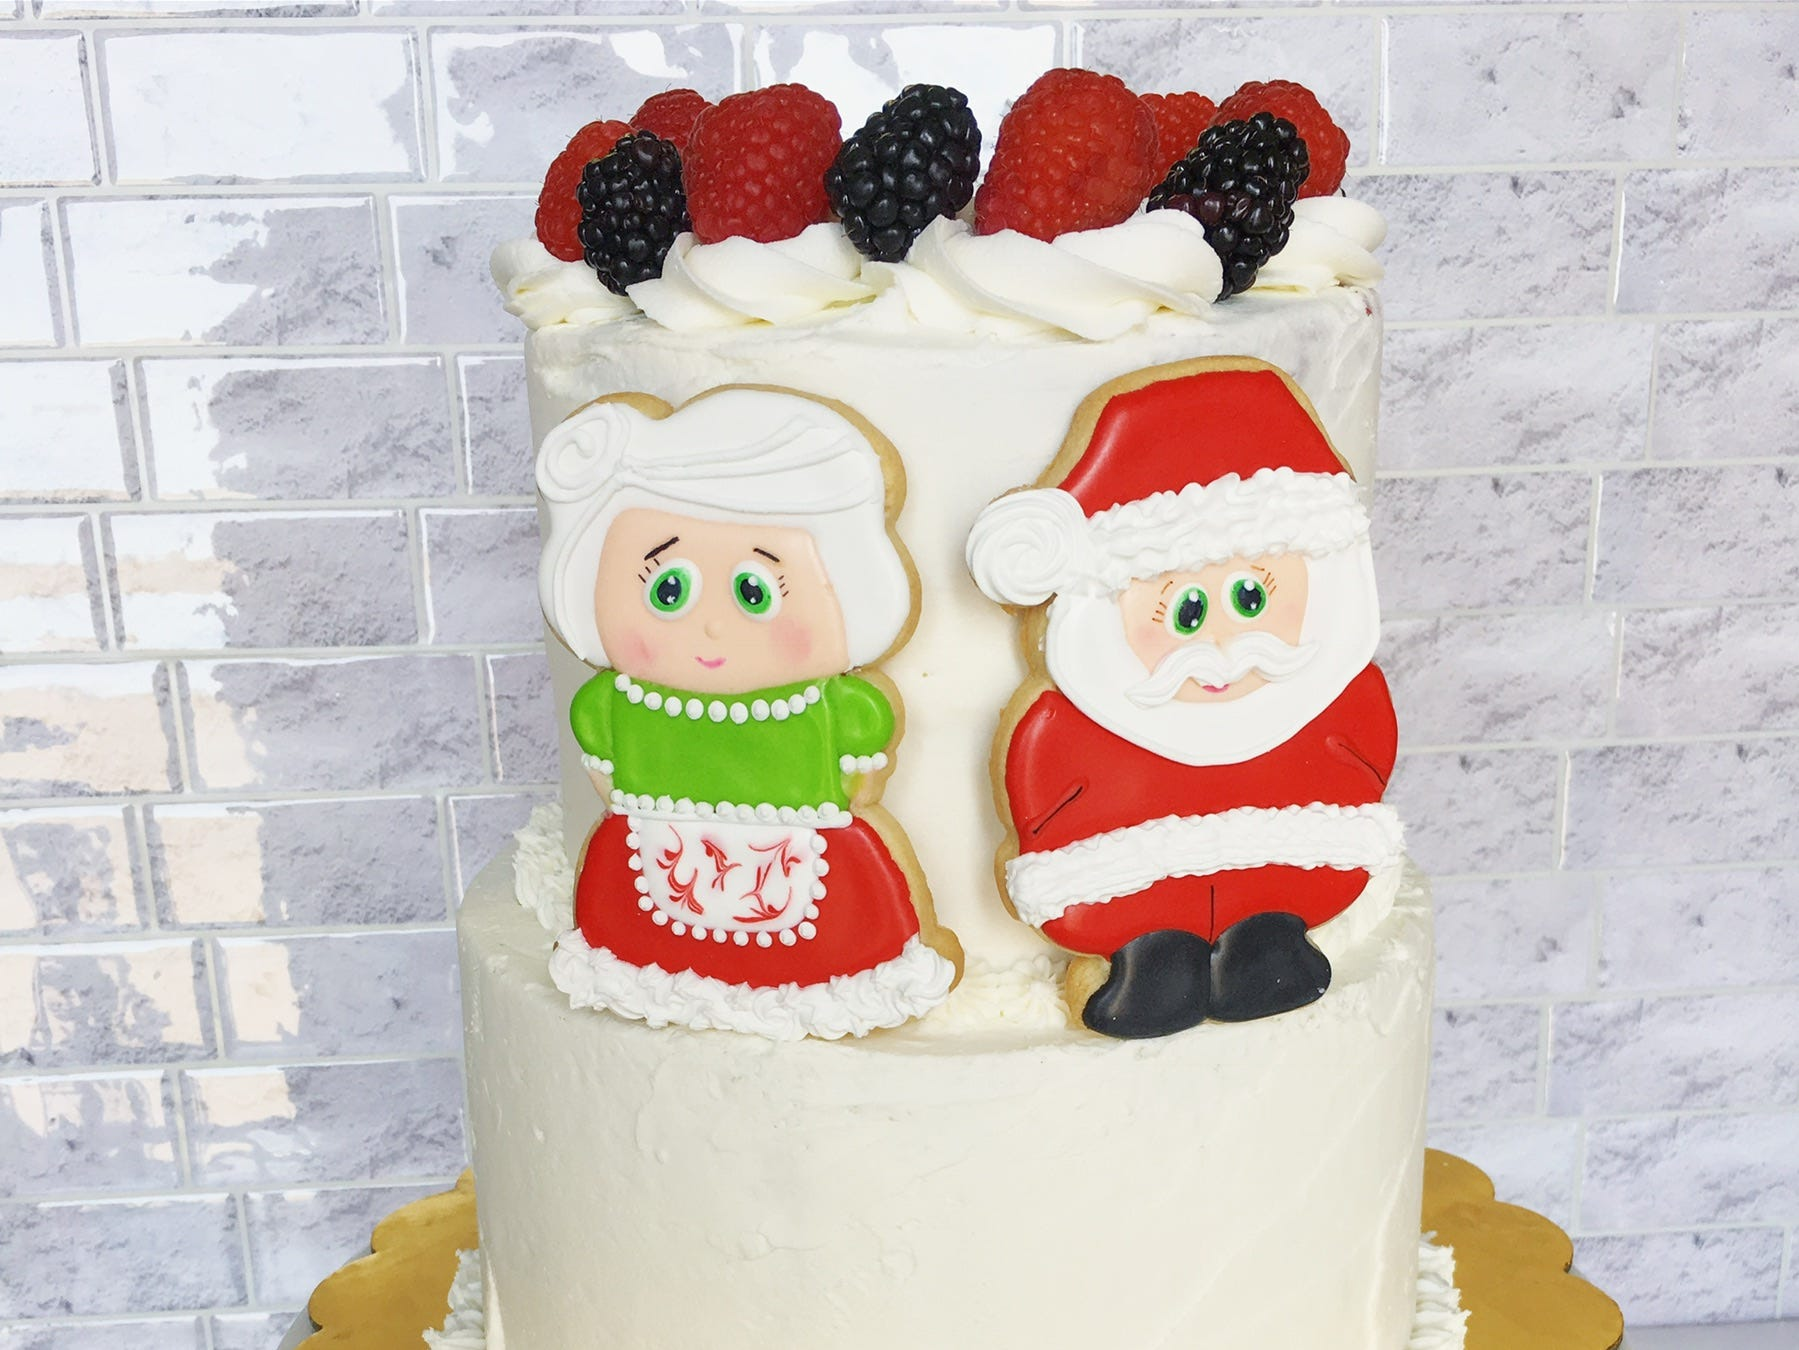 A holiday cake created by local championship baker Julia Perugini.